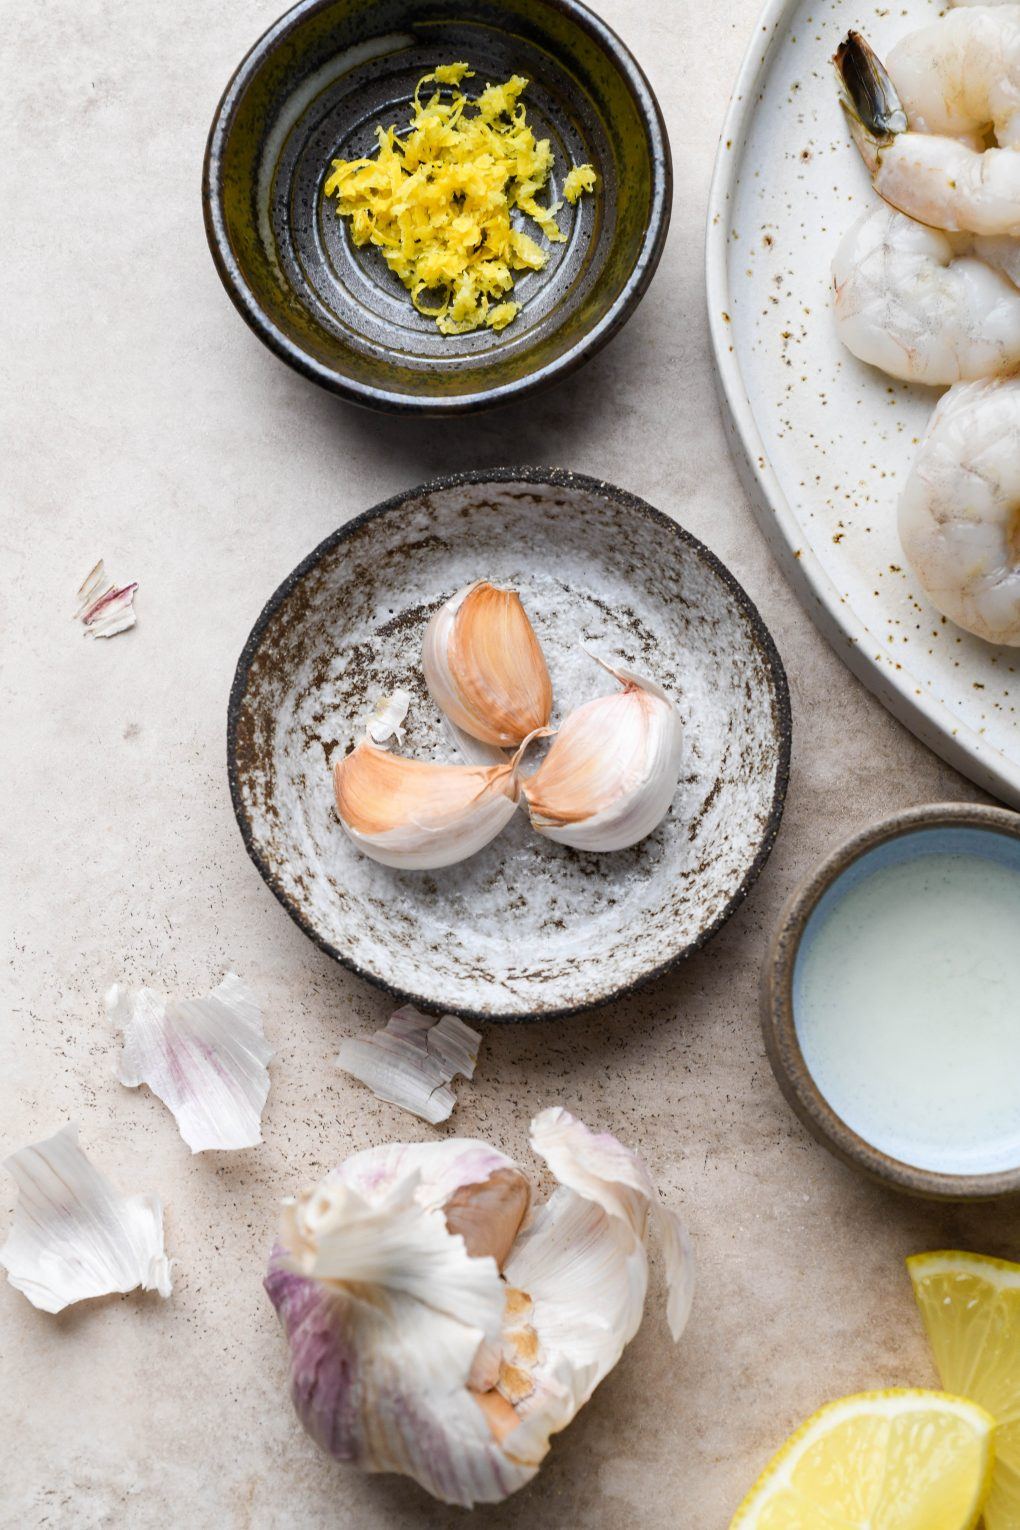 A small textured dish filled with 3 garlic cloves. Surrounded by some scattered garlic skin, a dish of lemon zest, and a small bowl of lemon juice. On a light colored background.